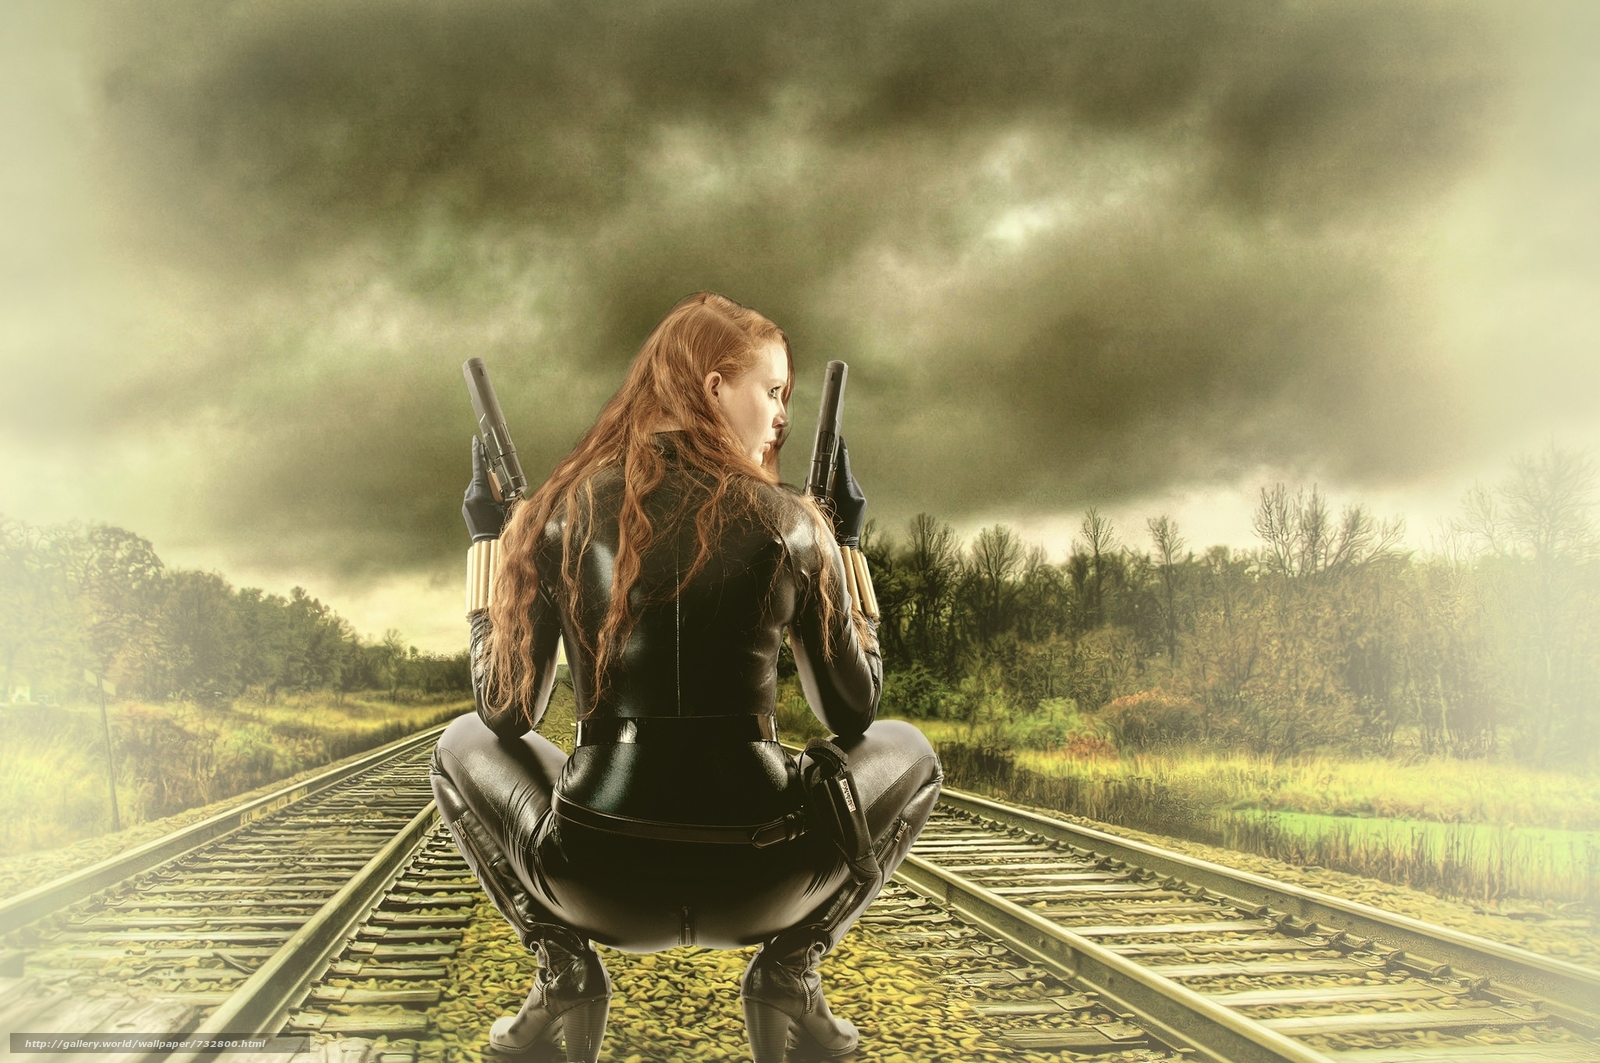 Railway, girl, warrior